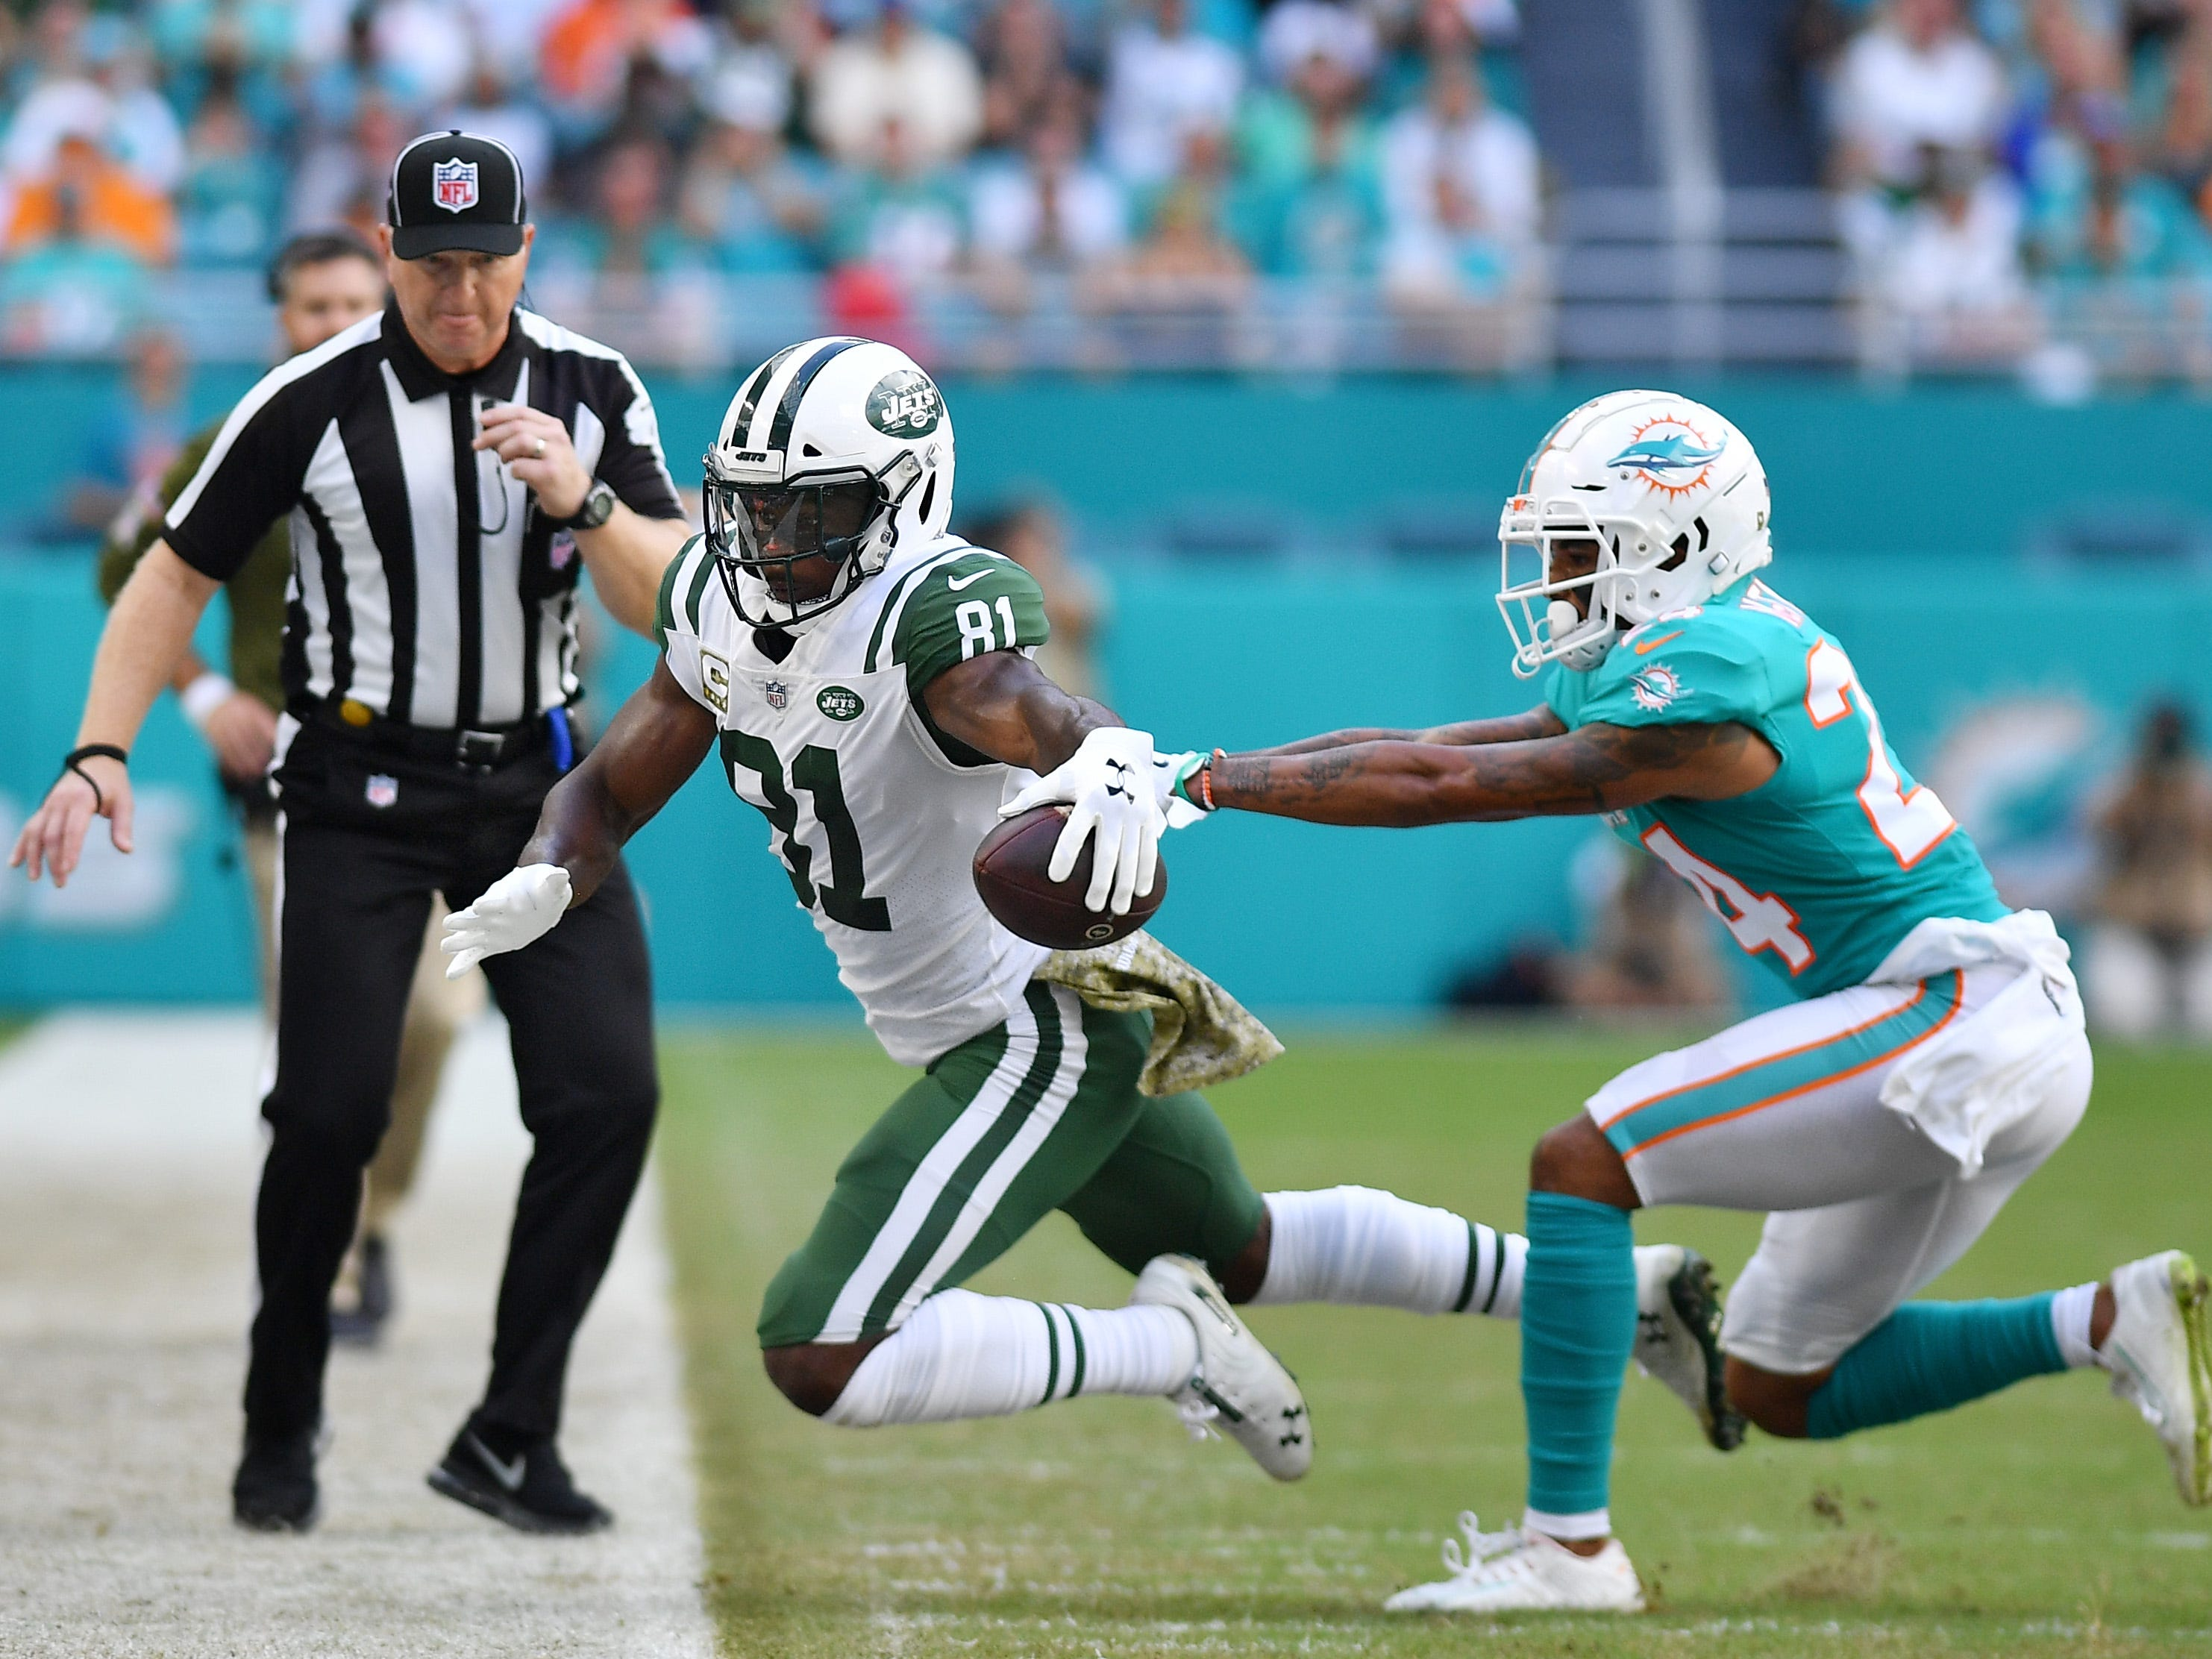 Quincy Enunwa (81) of the New York Jets tries to avoid the tackle of Torry McTyer (24) of the Miami Dolphins in the first half at Hard Rock Stadium.